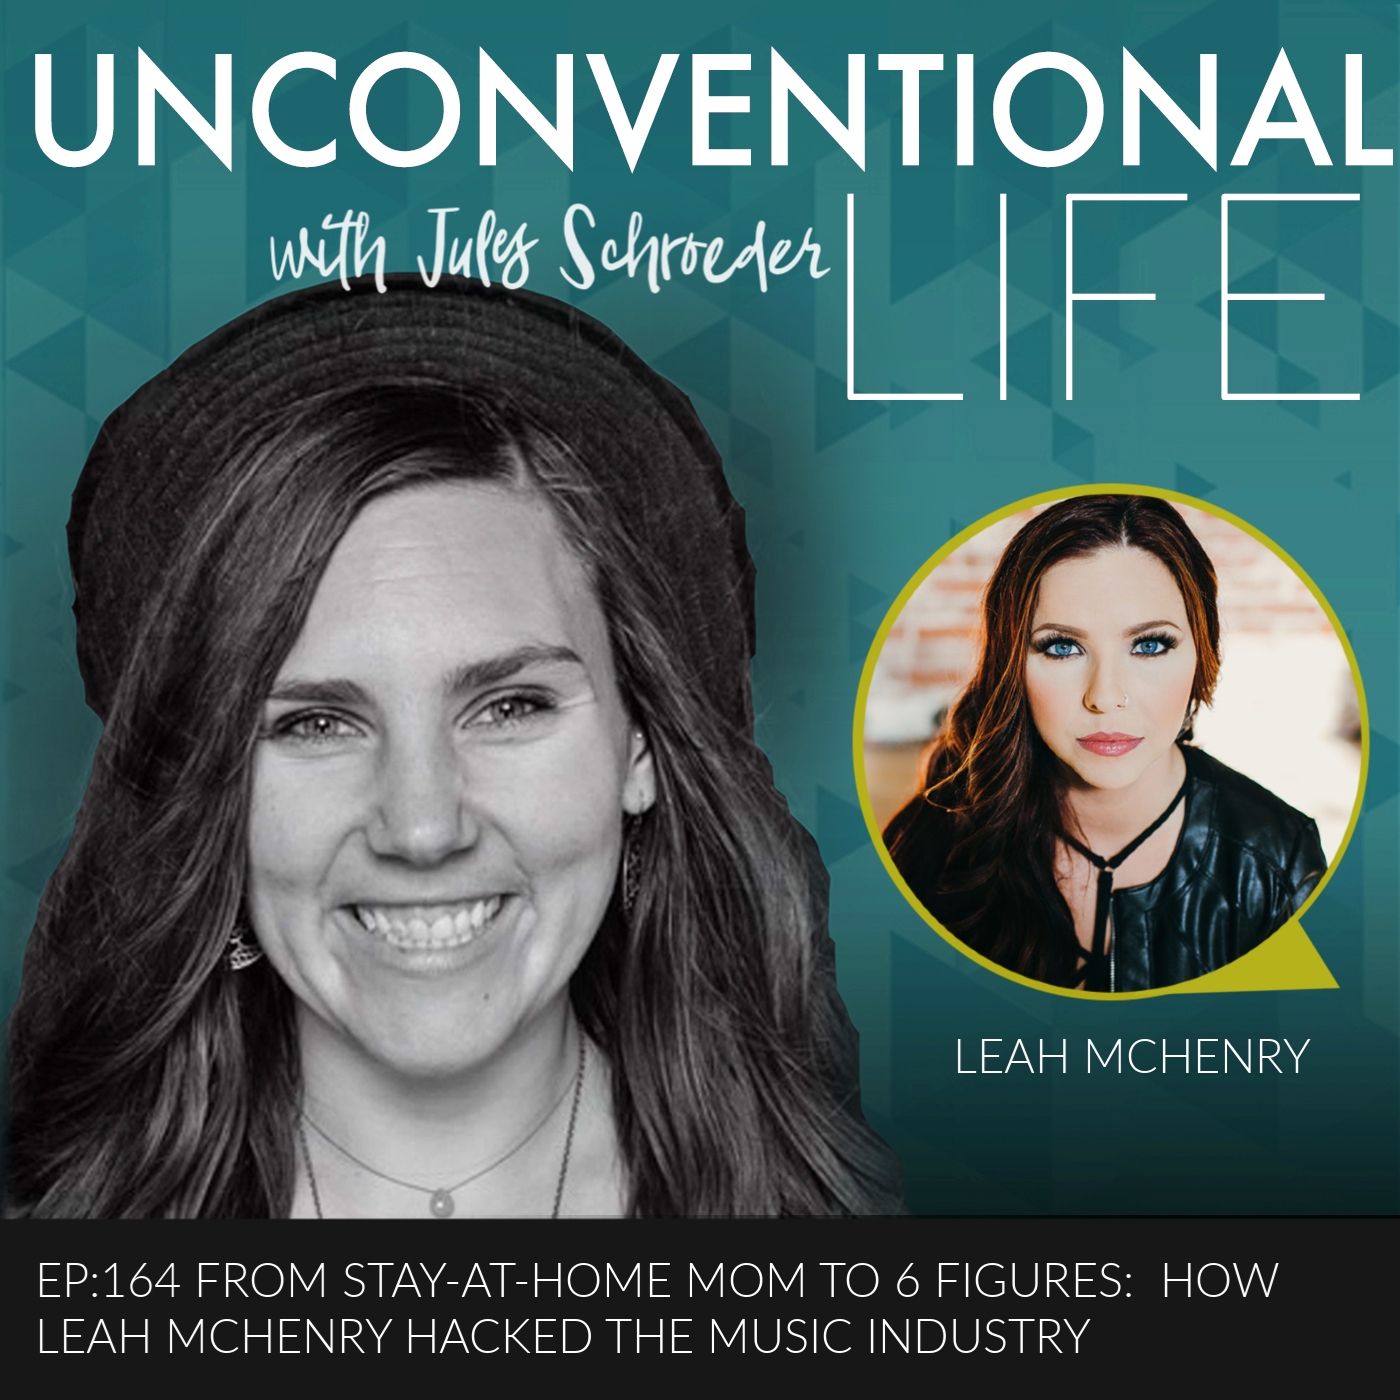 EP:164 From Stay-at-Home Mom to 6 Figures: How Leah McHenry Hacked the Music Industry